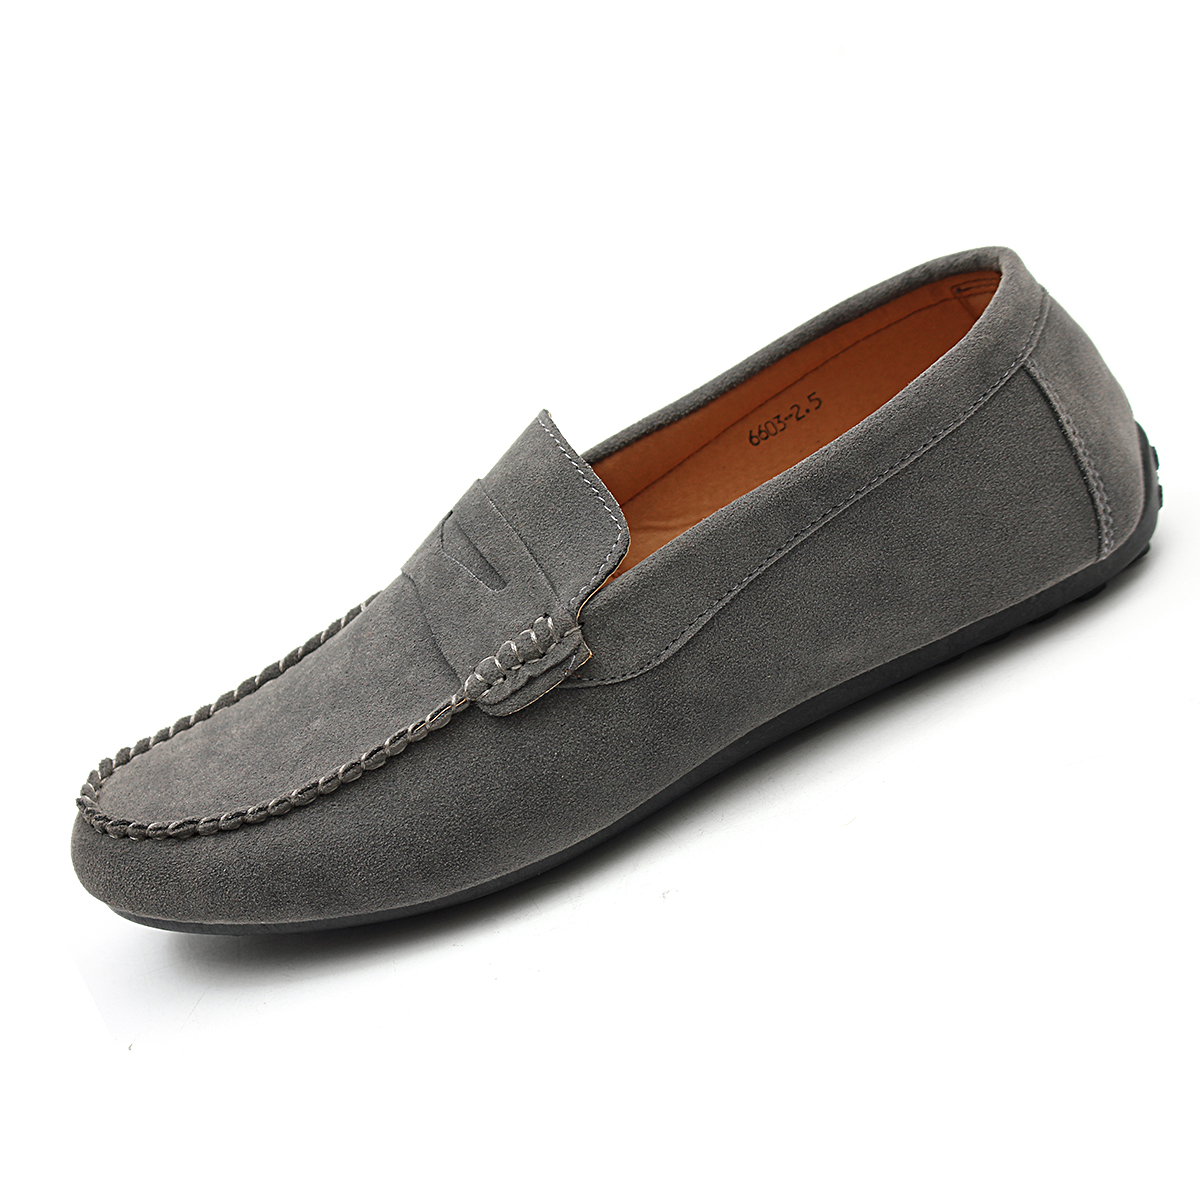 casual suede leather slip on driving shoes moccasin